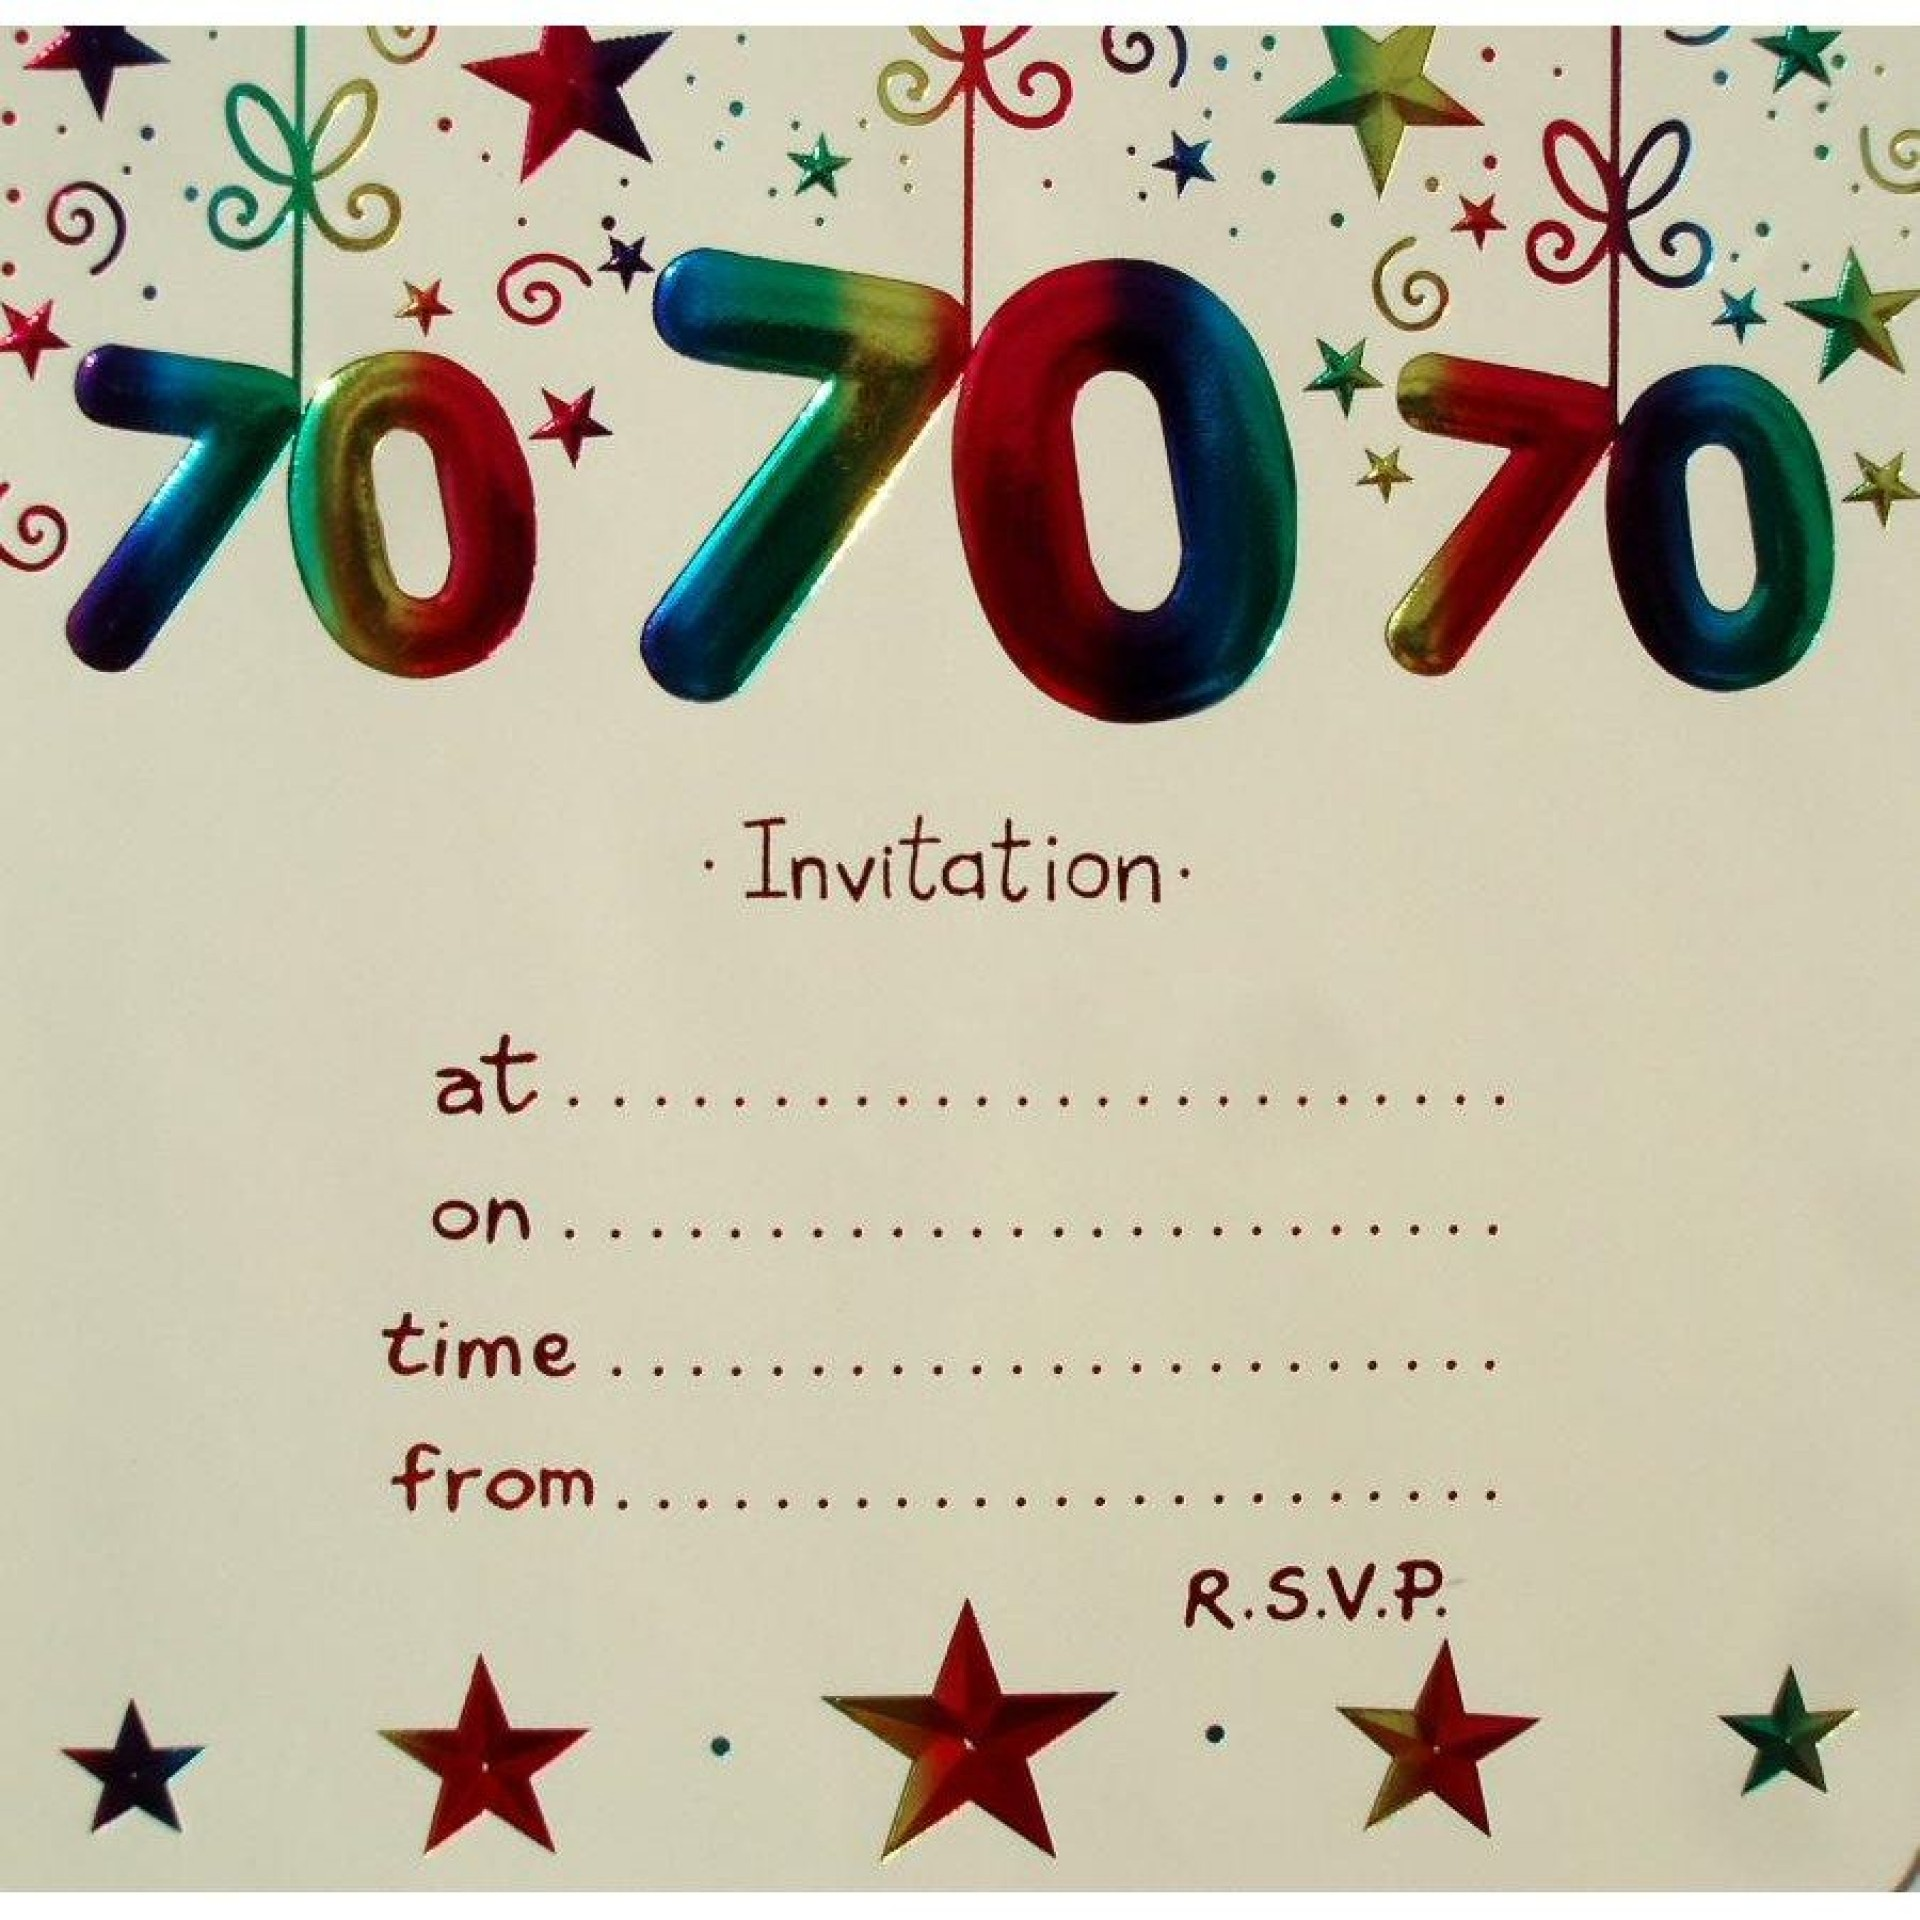 003 Remarkable 70th Birthday Invitation Template Free Sample  Surprise Invite With Photo1920